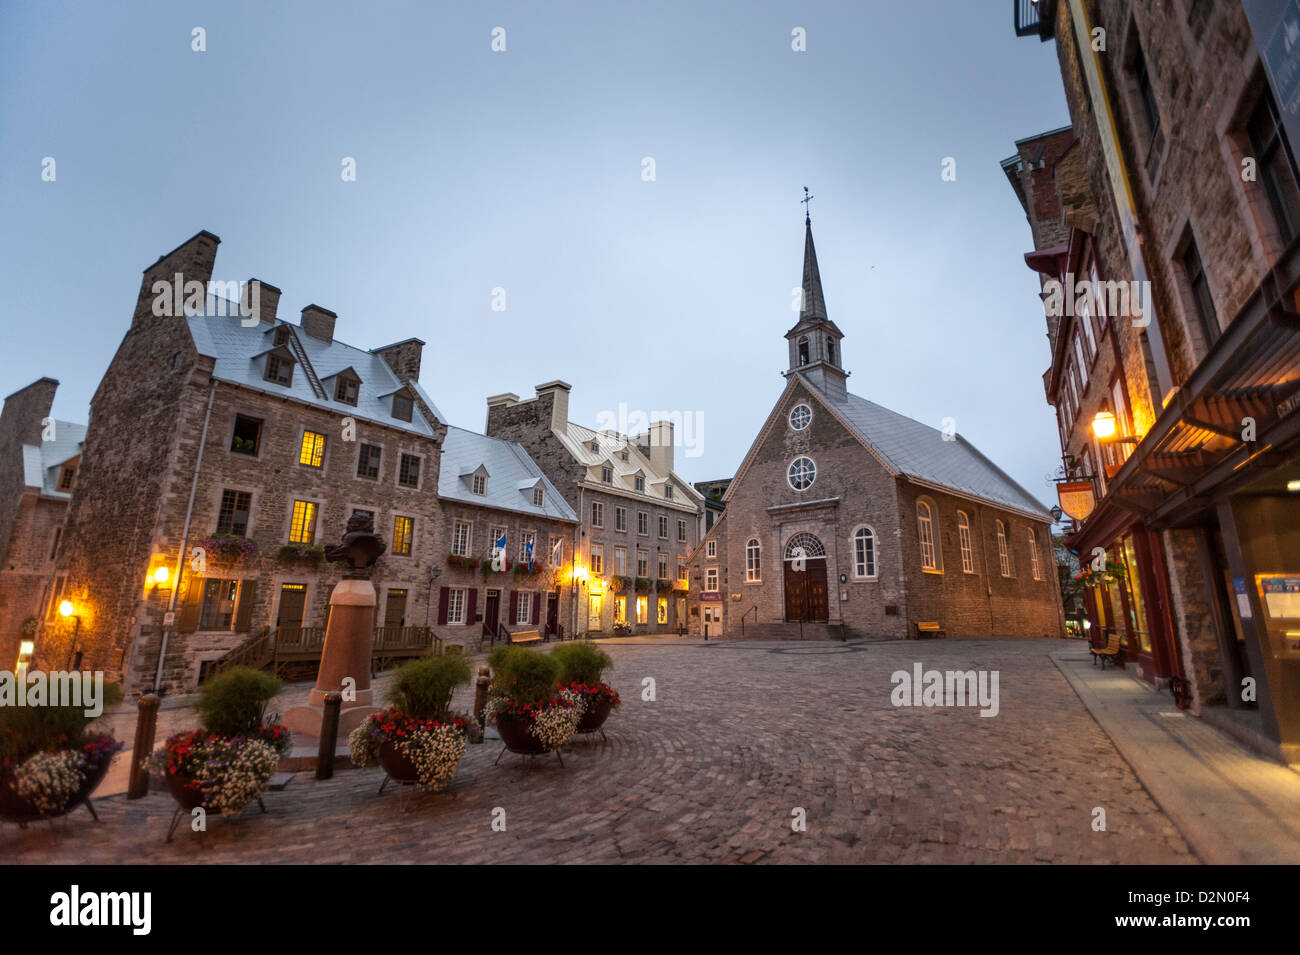 Place Royale, Quebec City, Province of Quebec, Canada, North America - Stock Image